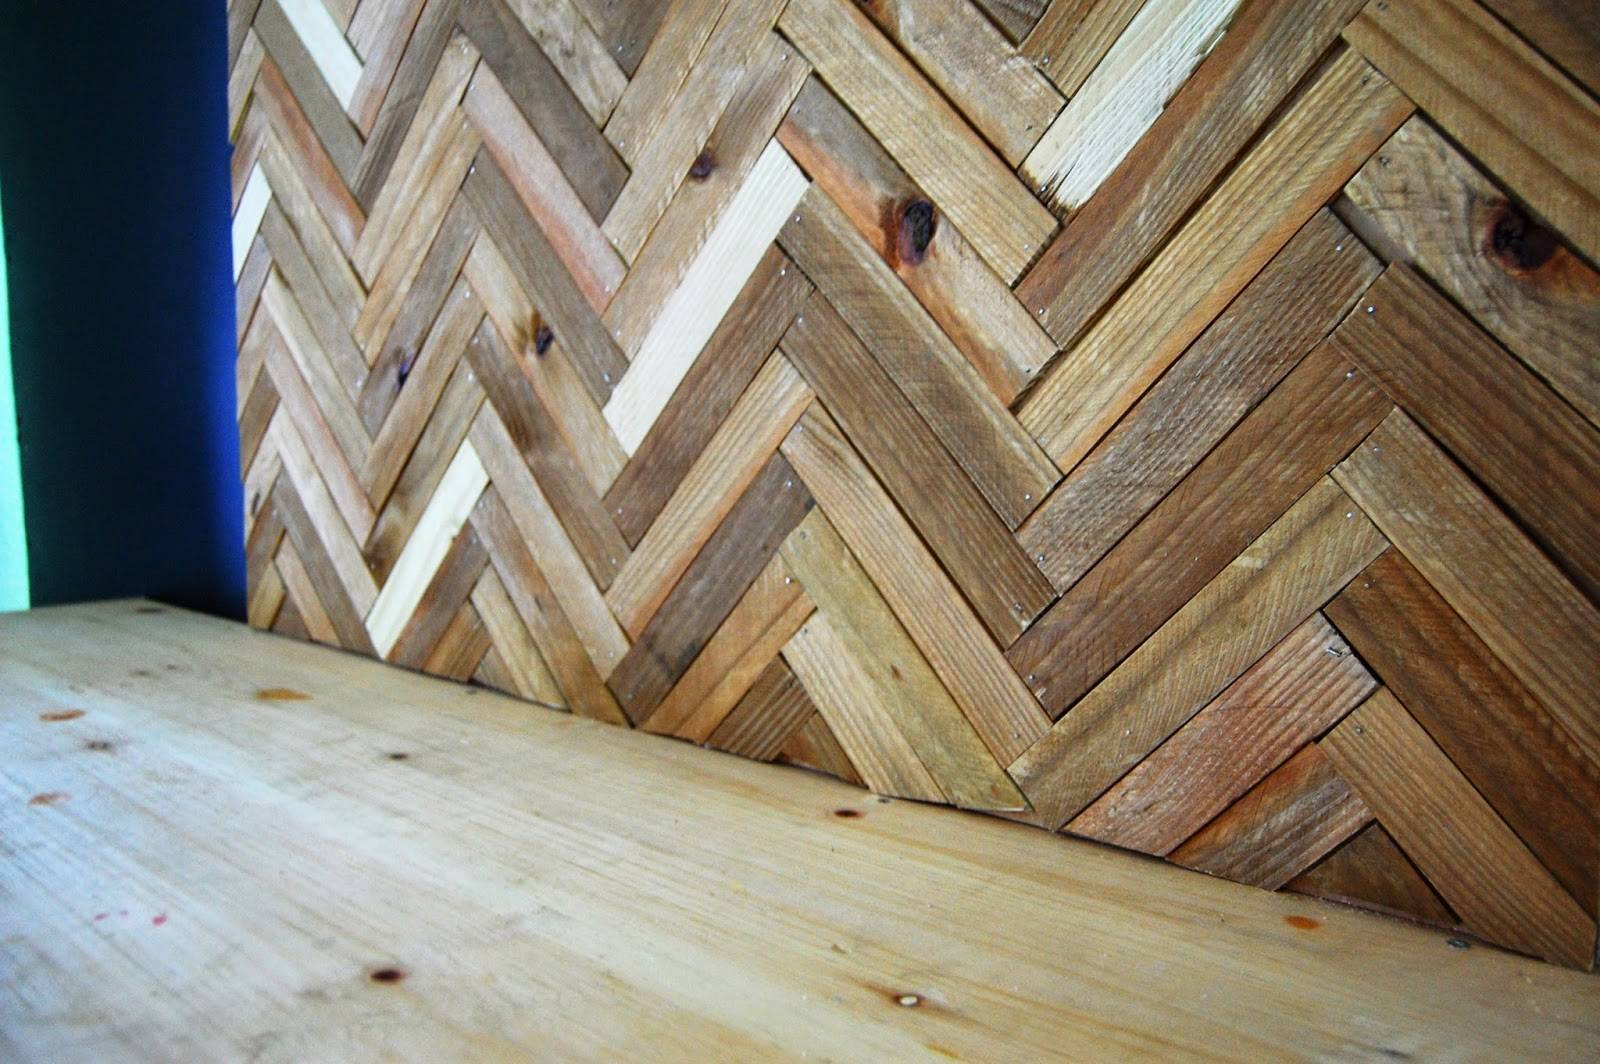 Ohlalaali Diy Herringbone Wood Wall Art